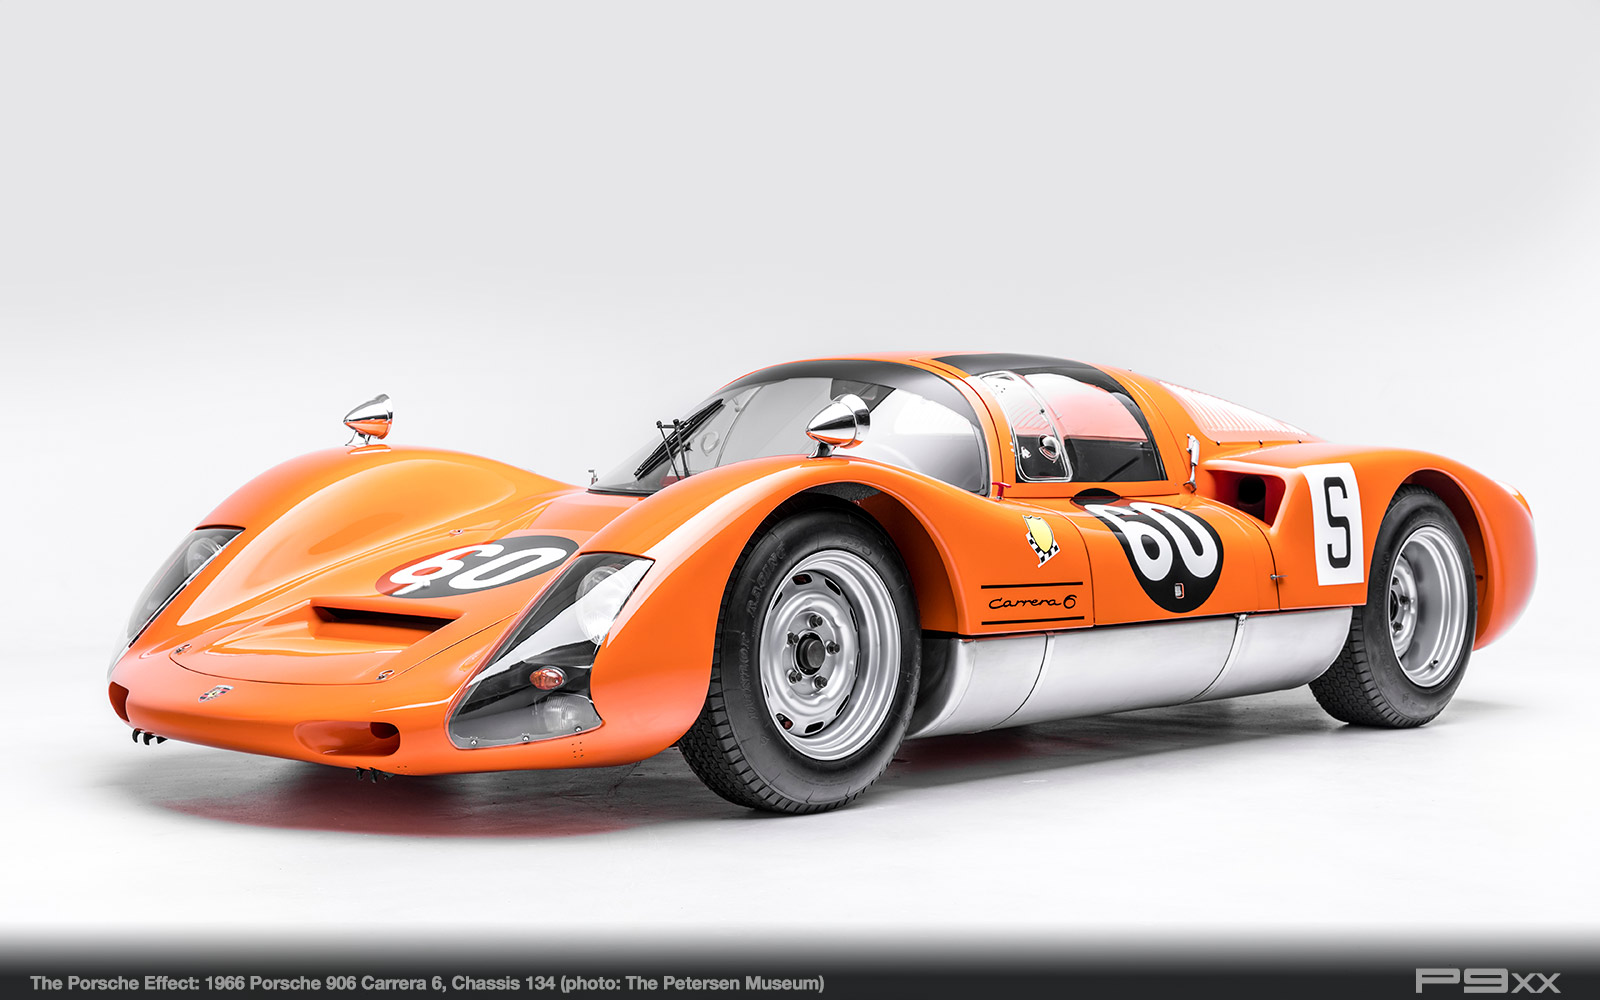 1964-906-Carrera-6-Chassis-134-Petersen-Automotive-Museum-The-Porsche-Effect-362